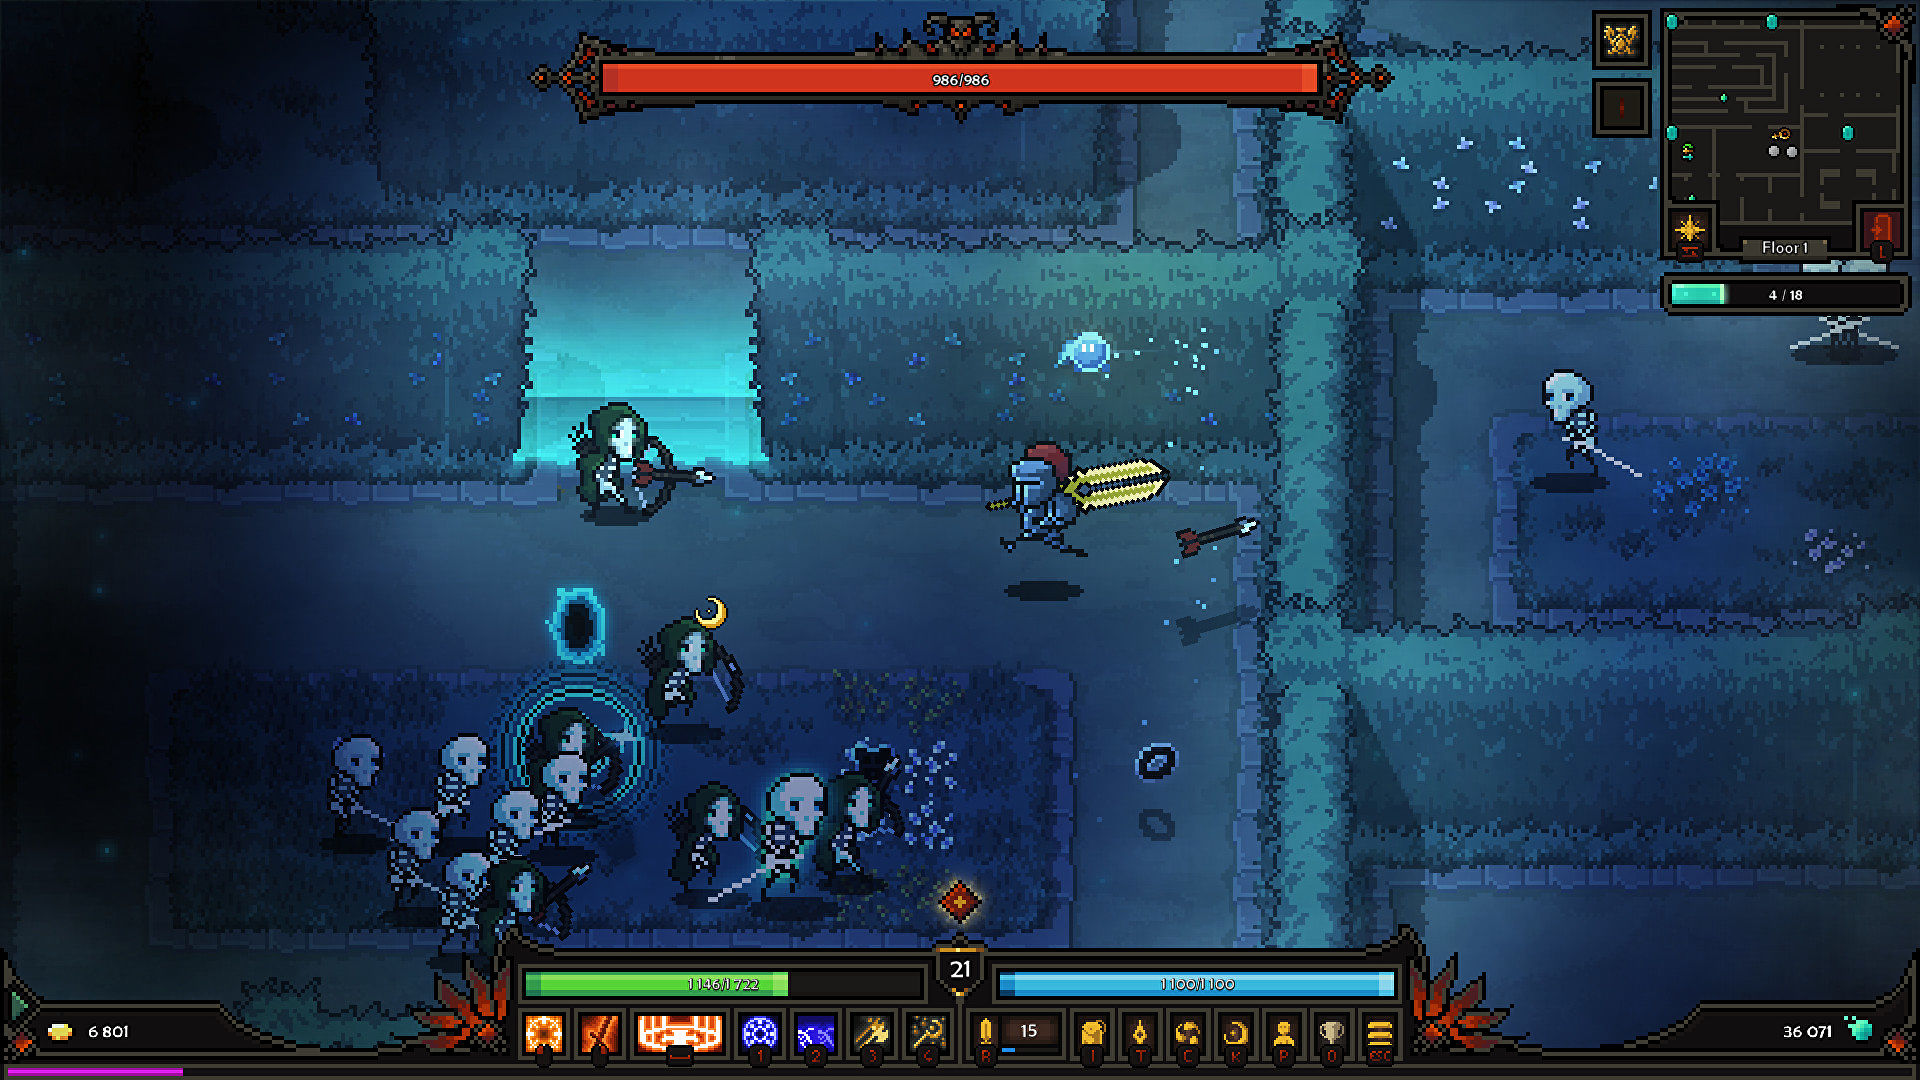 Hack and slash dungeon crawler The Slormancer launches in early access